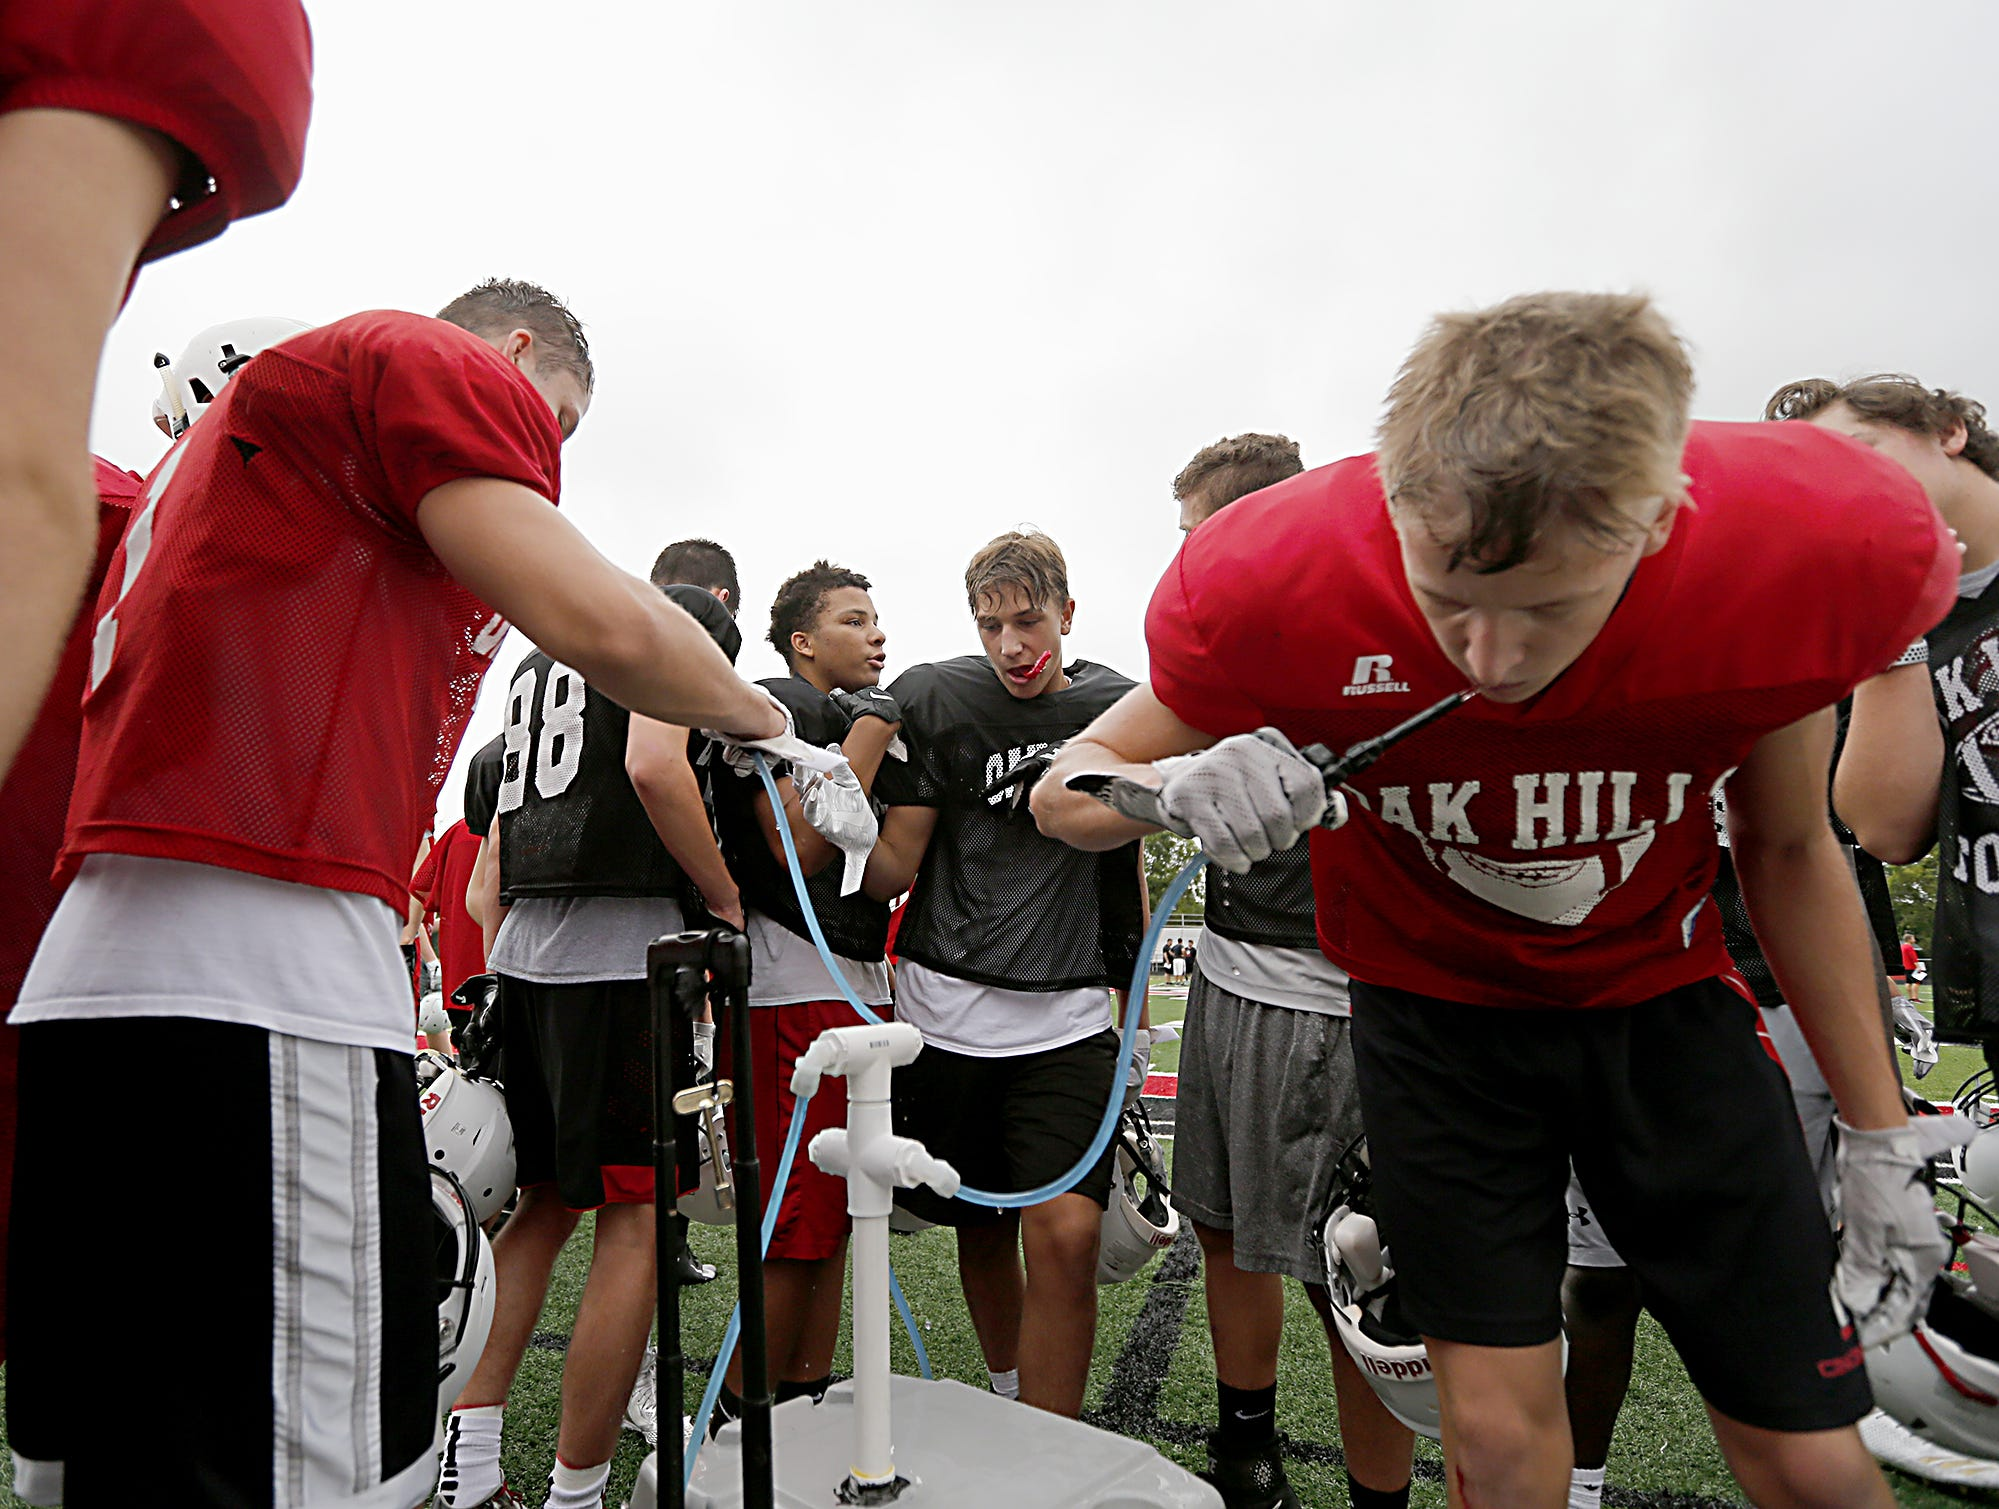 Players get a water break during football practice at Oak Hills Wednesday, Aug. 1, 2018. E.L. Hubbard for the Enquirer